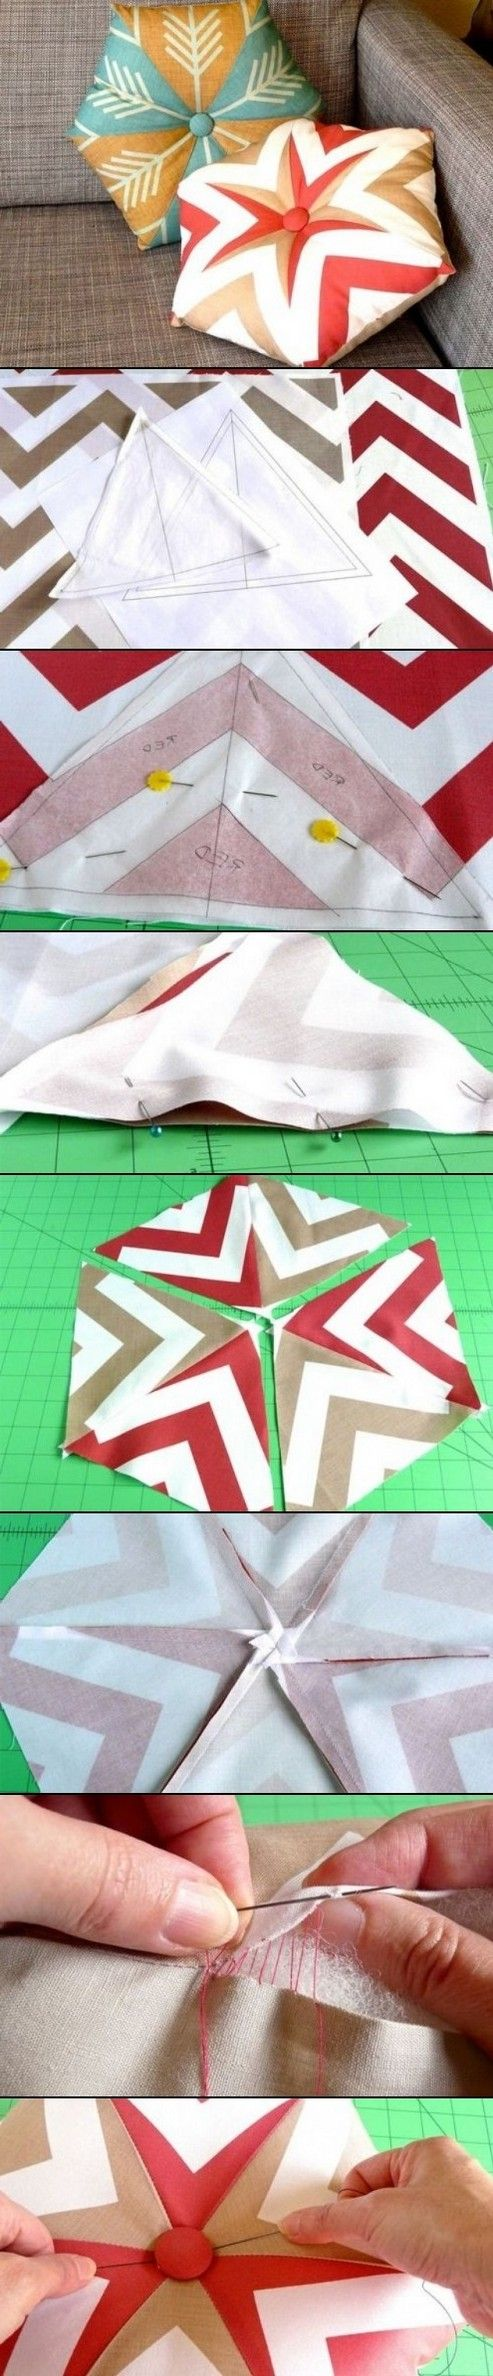 DIY Kaleidoscope Pillow